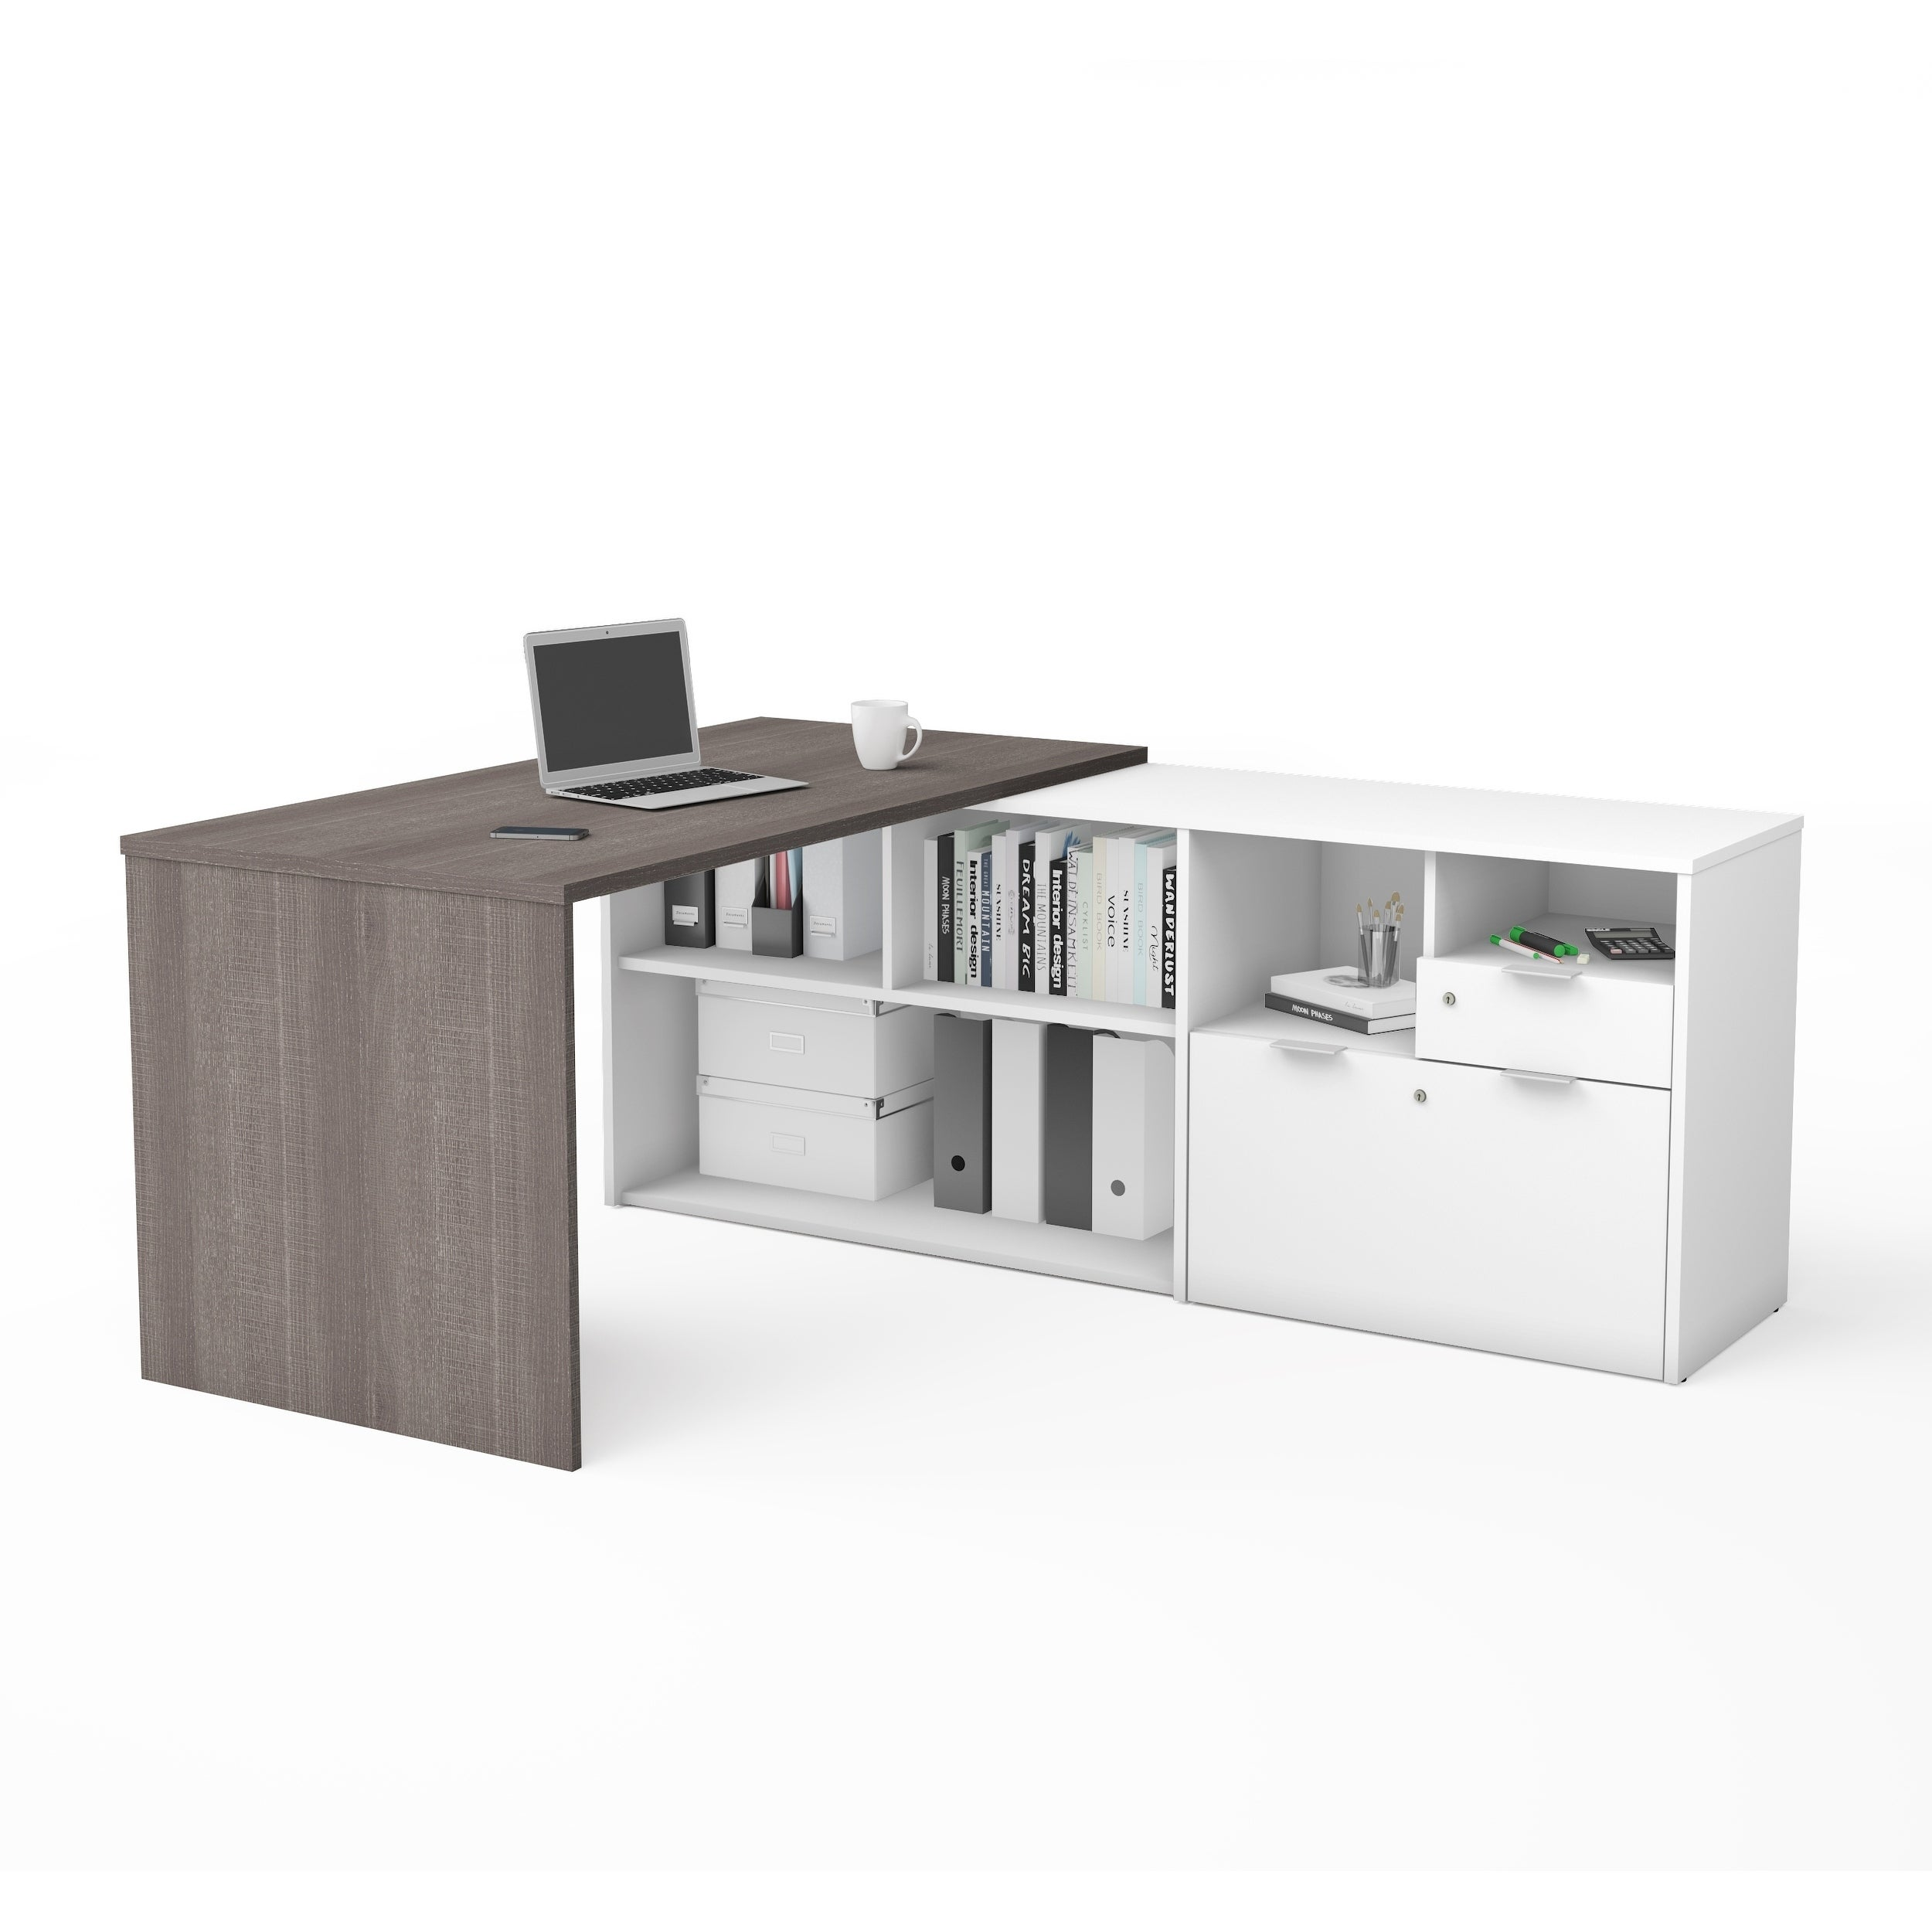 hard management and century il push desk solid from to open cable cubby two fullxfull products mid drawers modern wood with handcrafted